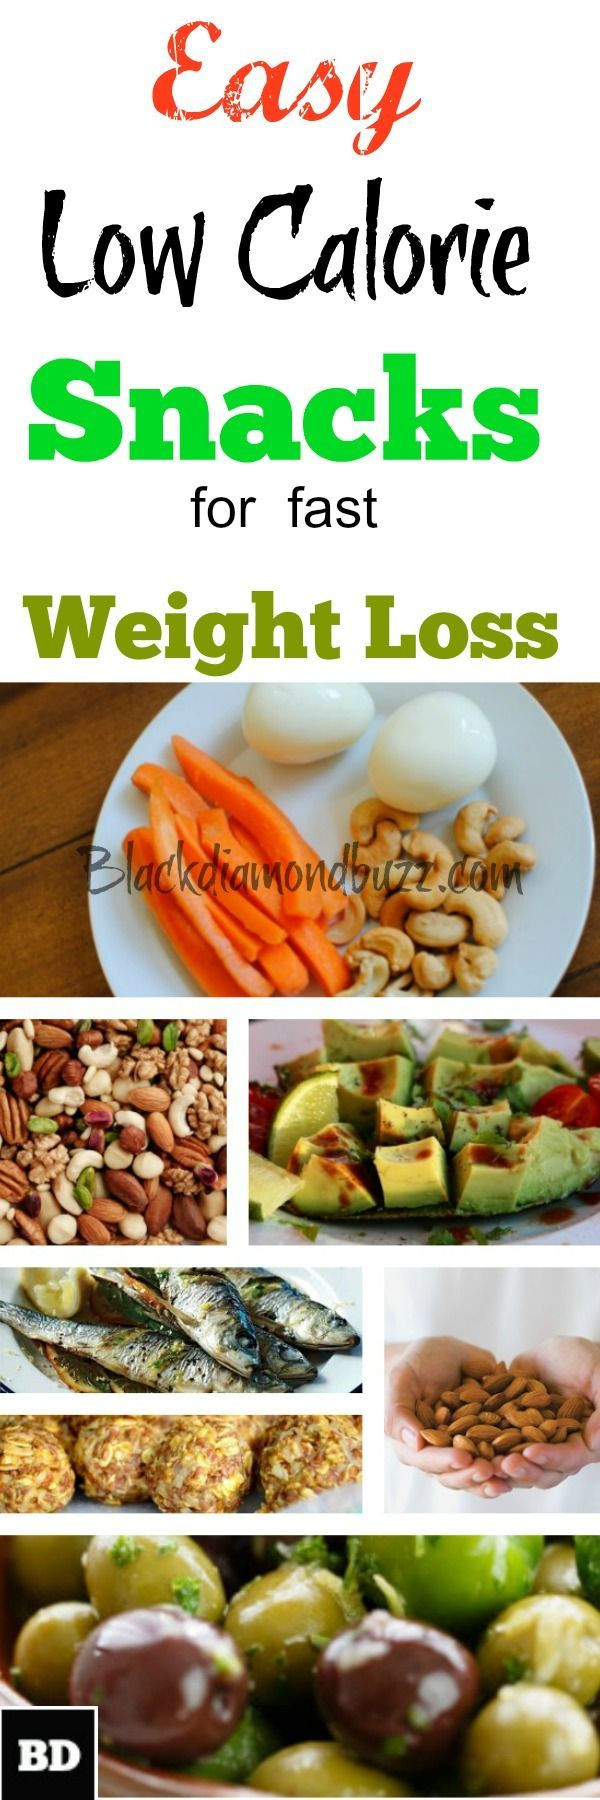 Healthy Snacks For Men'S Weight Loss  Best 25 Weight loss snacks ideas on Pinterest